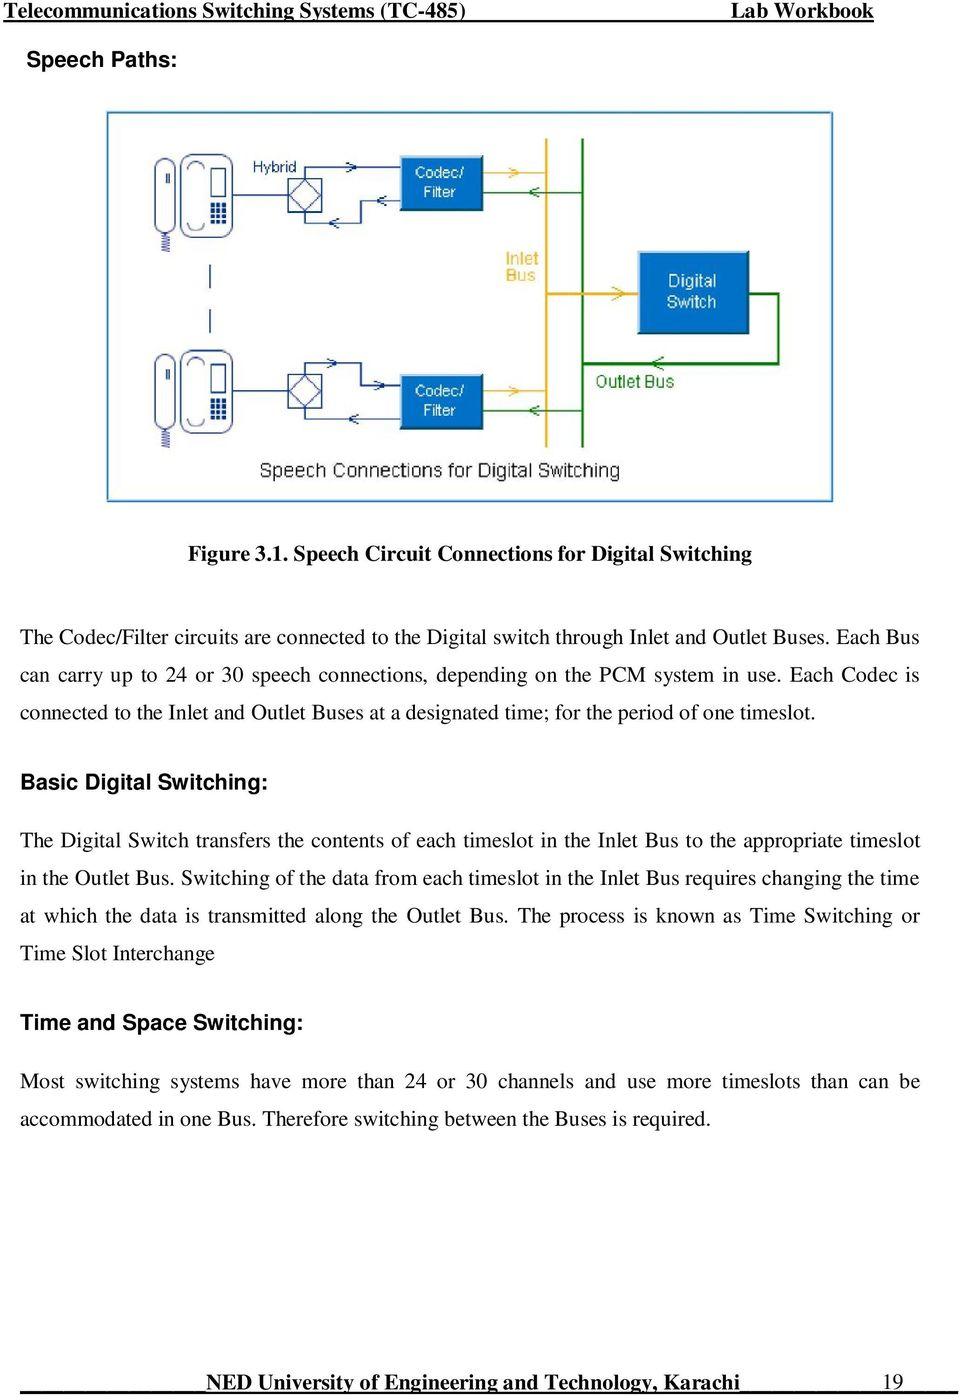 Basic Digital Switching: The Digital Switch transfers the contents of each timeslot in the Inlet Bus to the appropriate timeslot in the Outlet Bus.